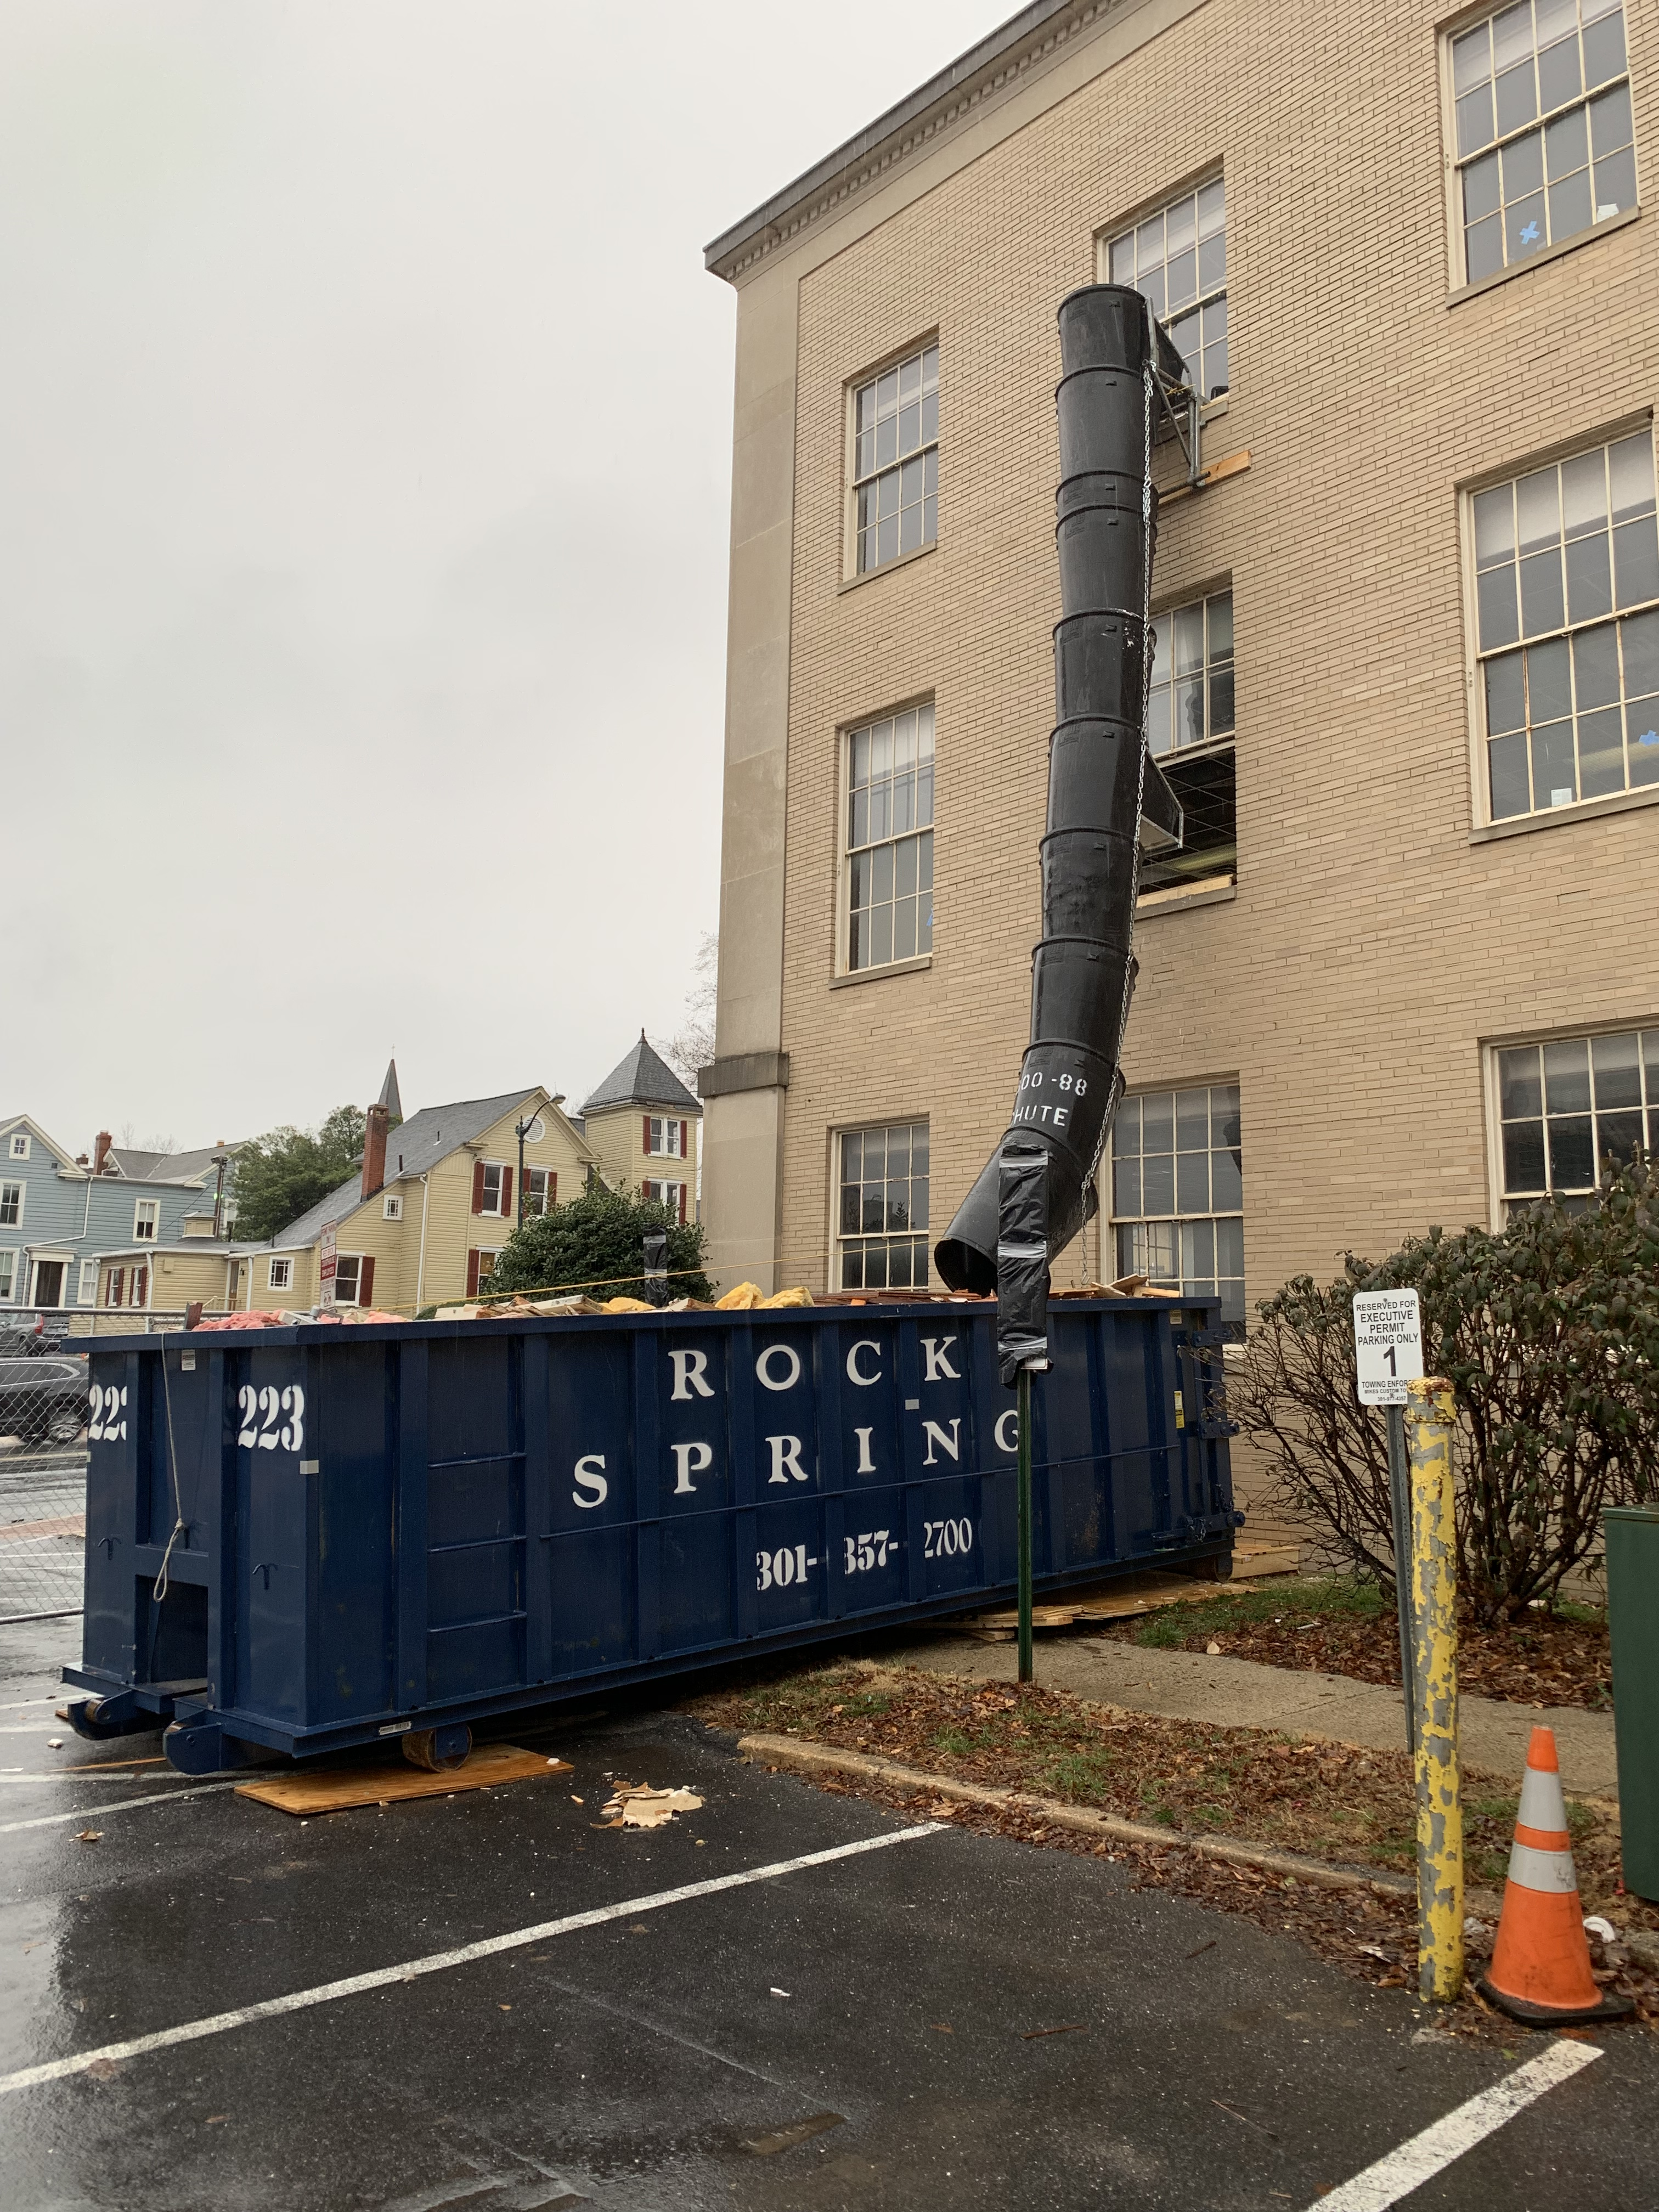 Dumpster with chute